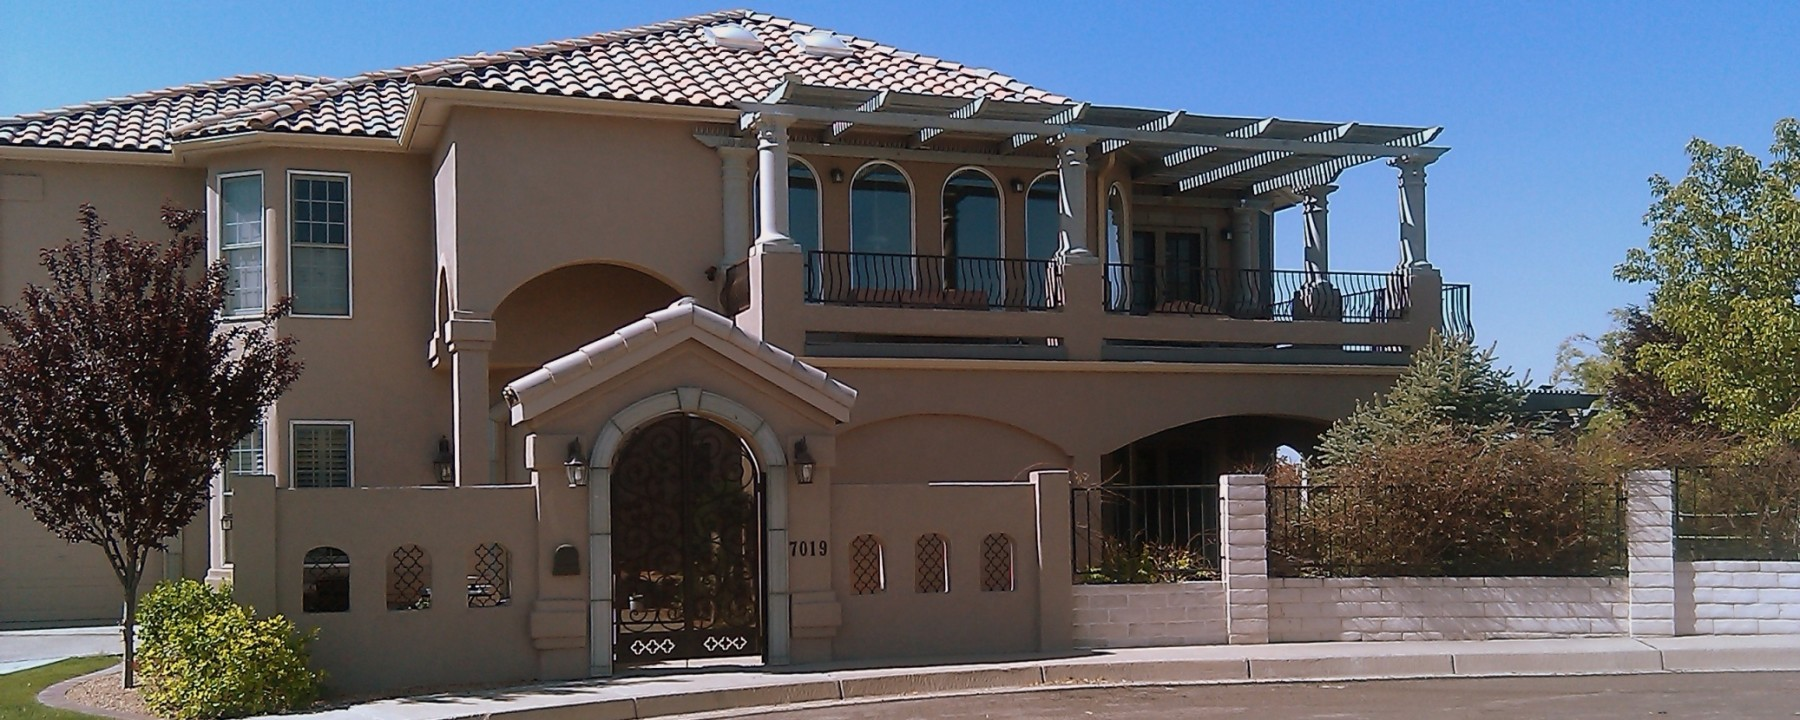 Mesa Precast | Home Exterior Decor, Hardscape Design using Architectural Precast, Architectural GFRC